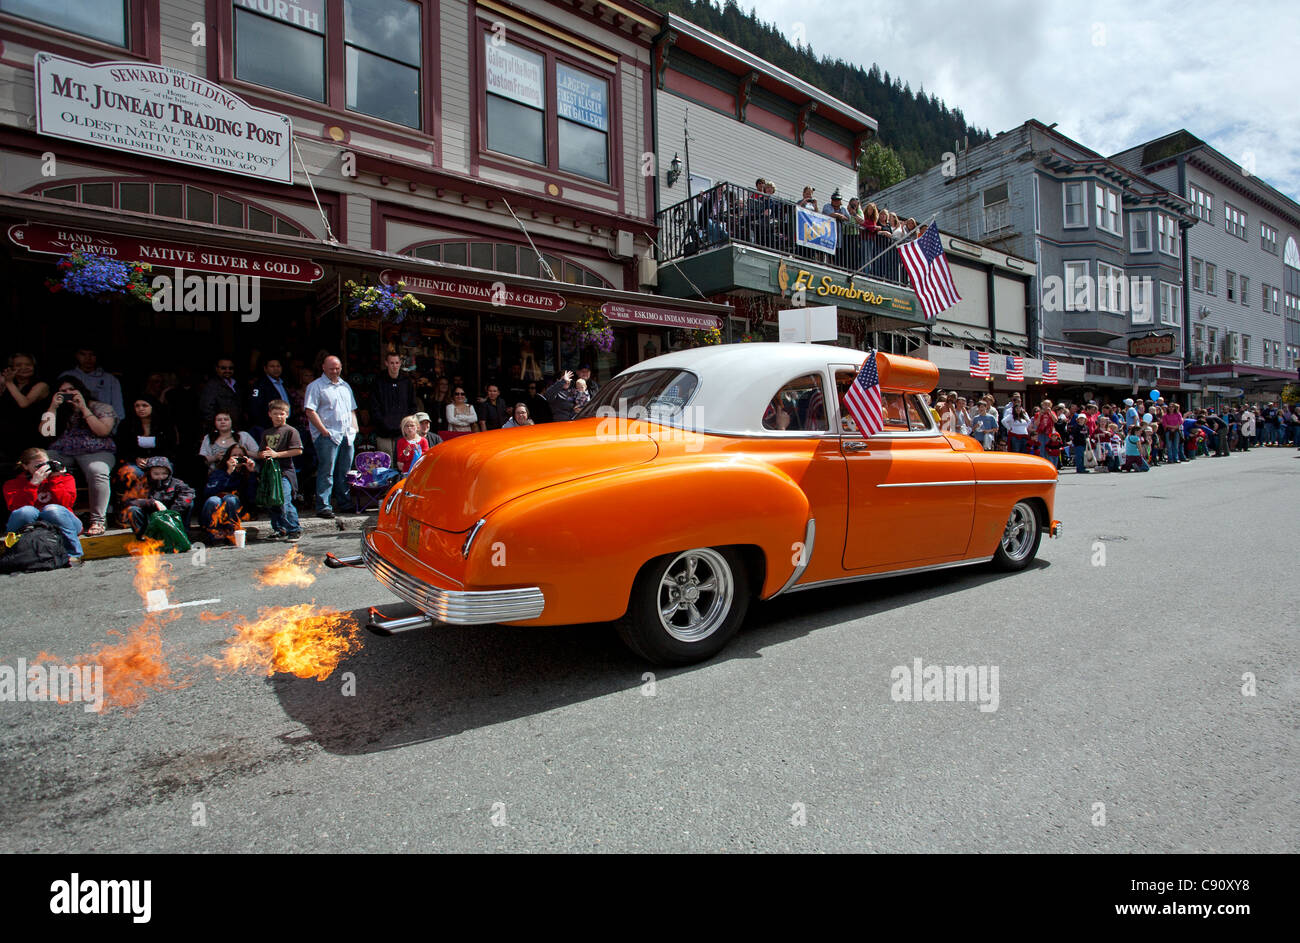 Hot rod car with flames on the exhaust. 4th July parade. Juneau ...